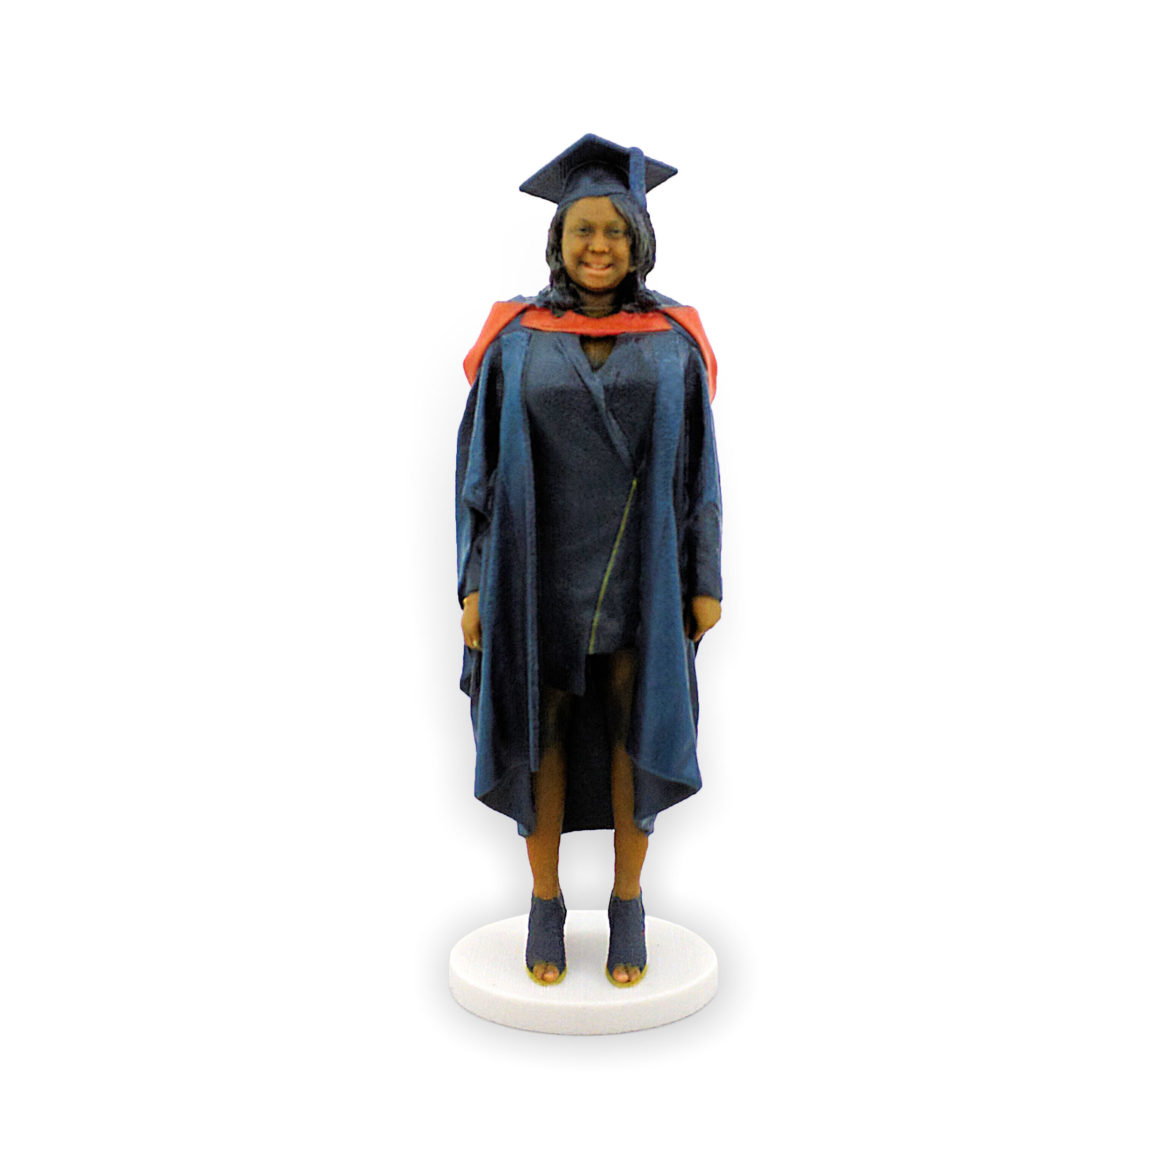 my3Dtwin, 3D Figurine of a women in graduation gown